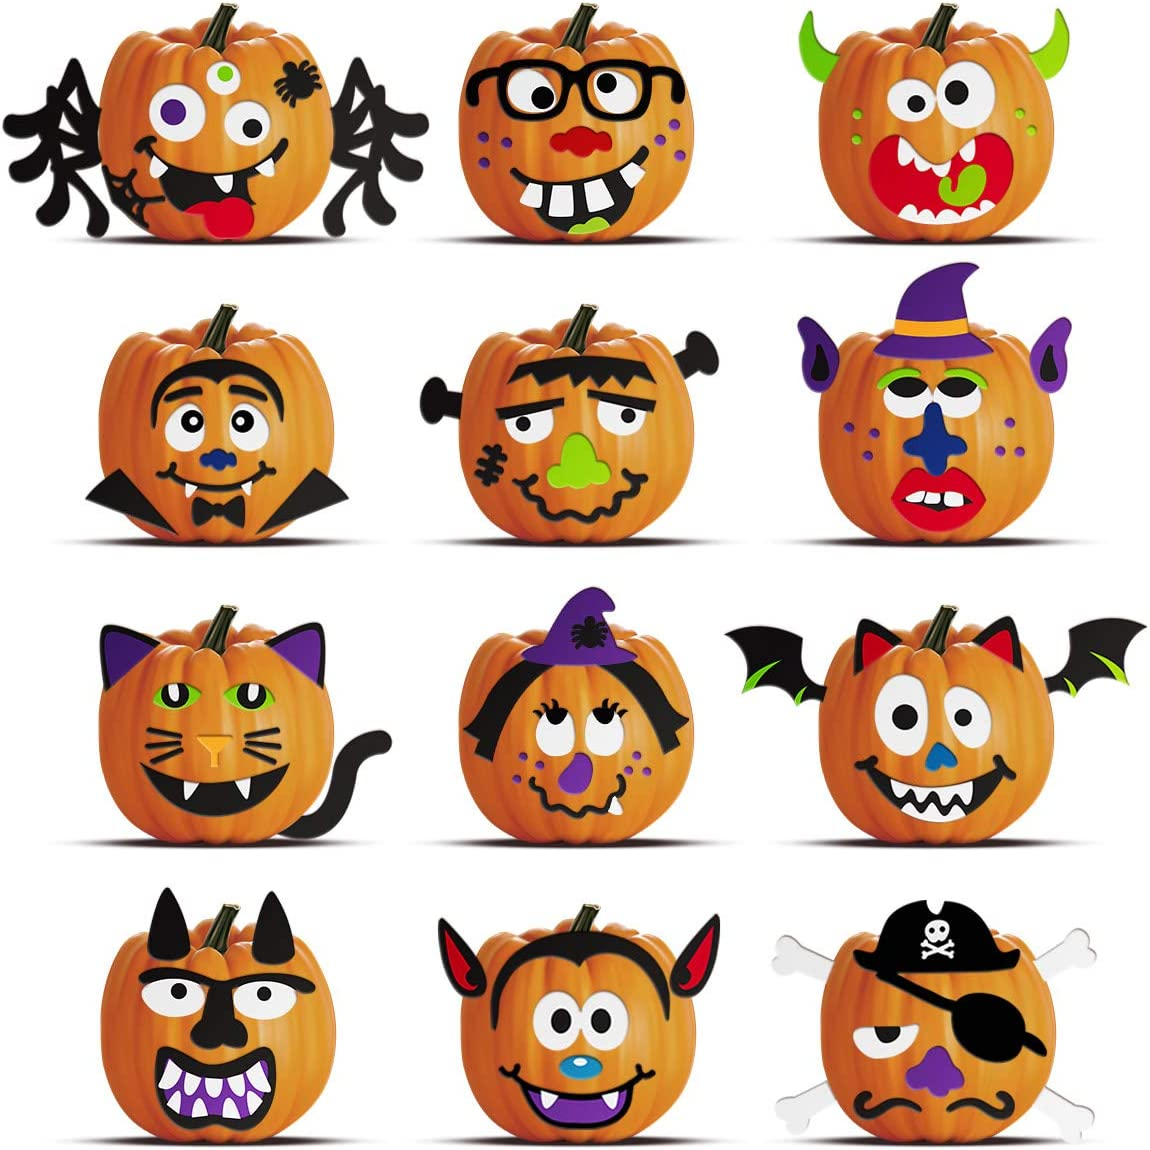 Halloween Pumpkin Decorating Kit Stickers, Halloween Crafts for Kids Halloween Trick or Treats Party Favors Supplies